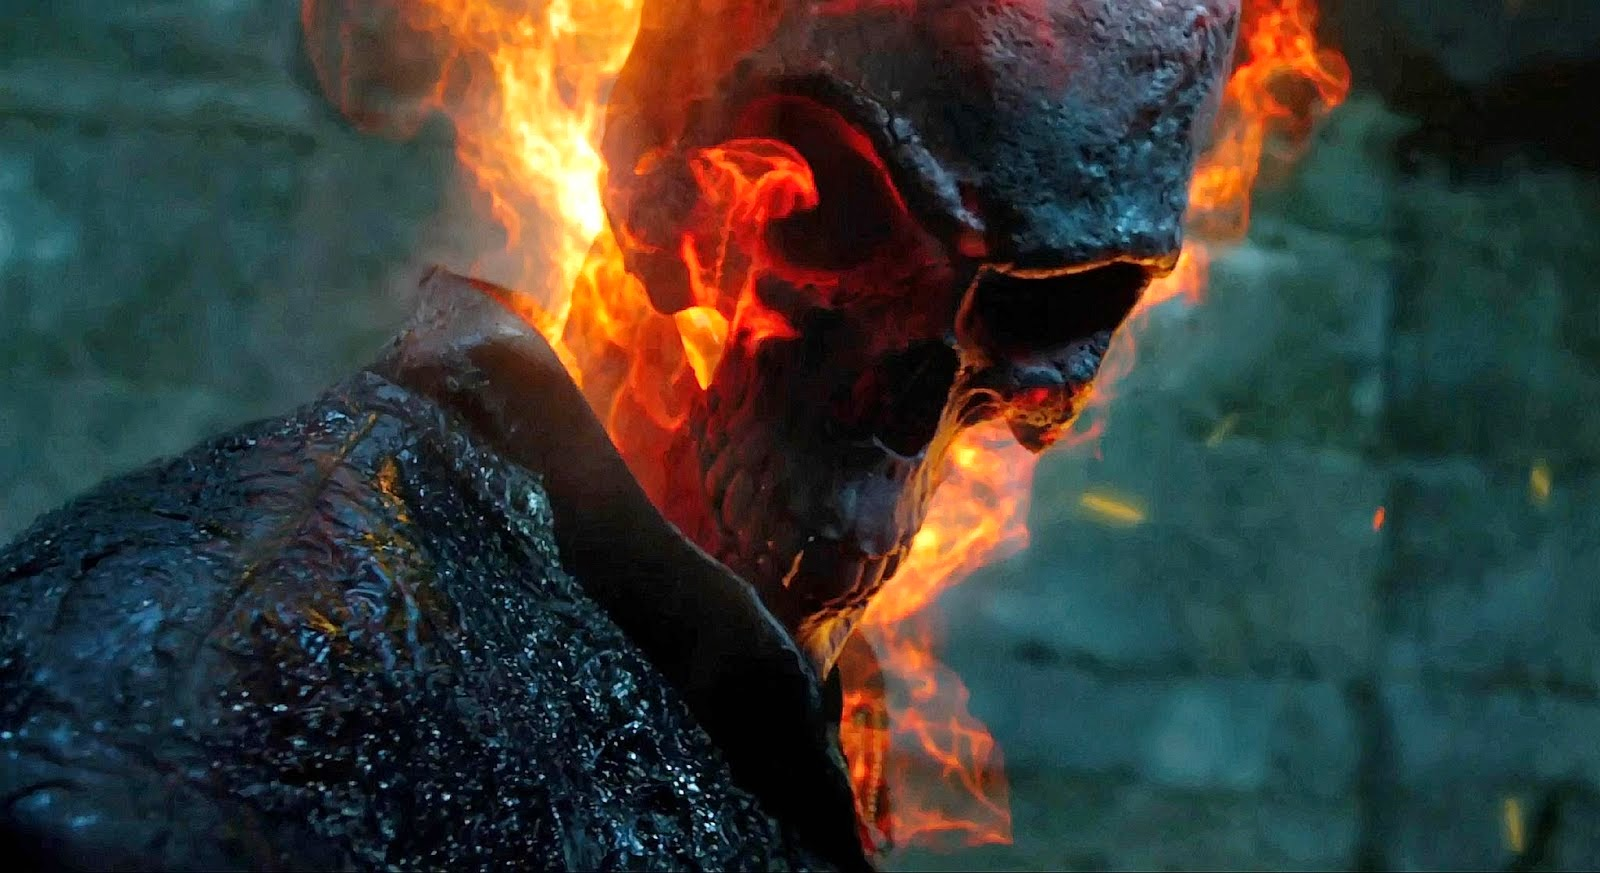 hd wallpapers ghost rider hd wallpapers ghost rider hd wallpapers 1600x873